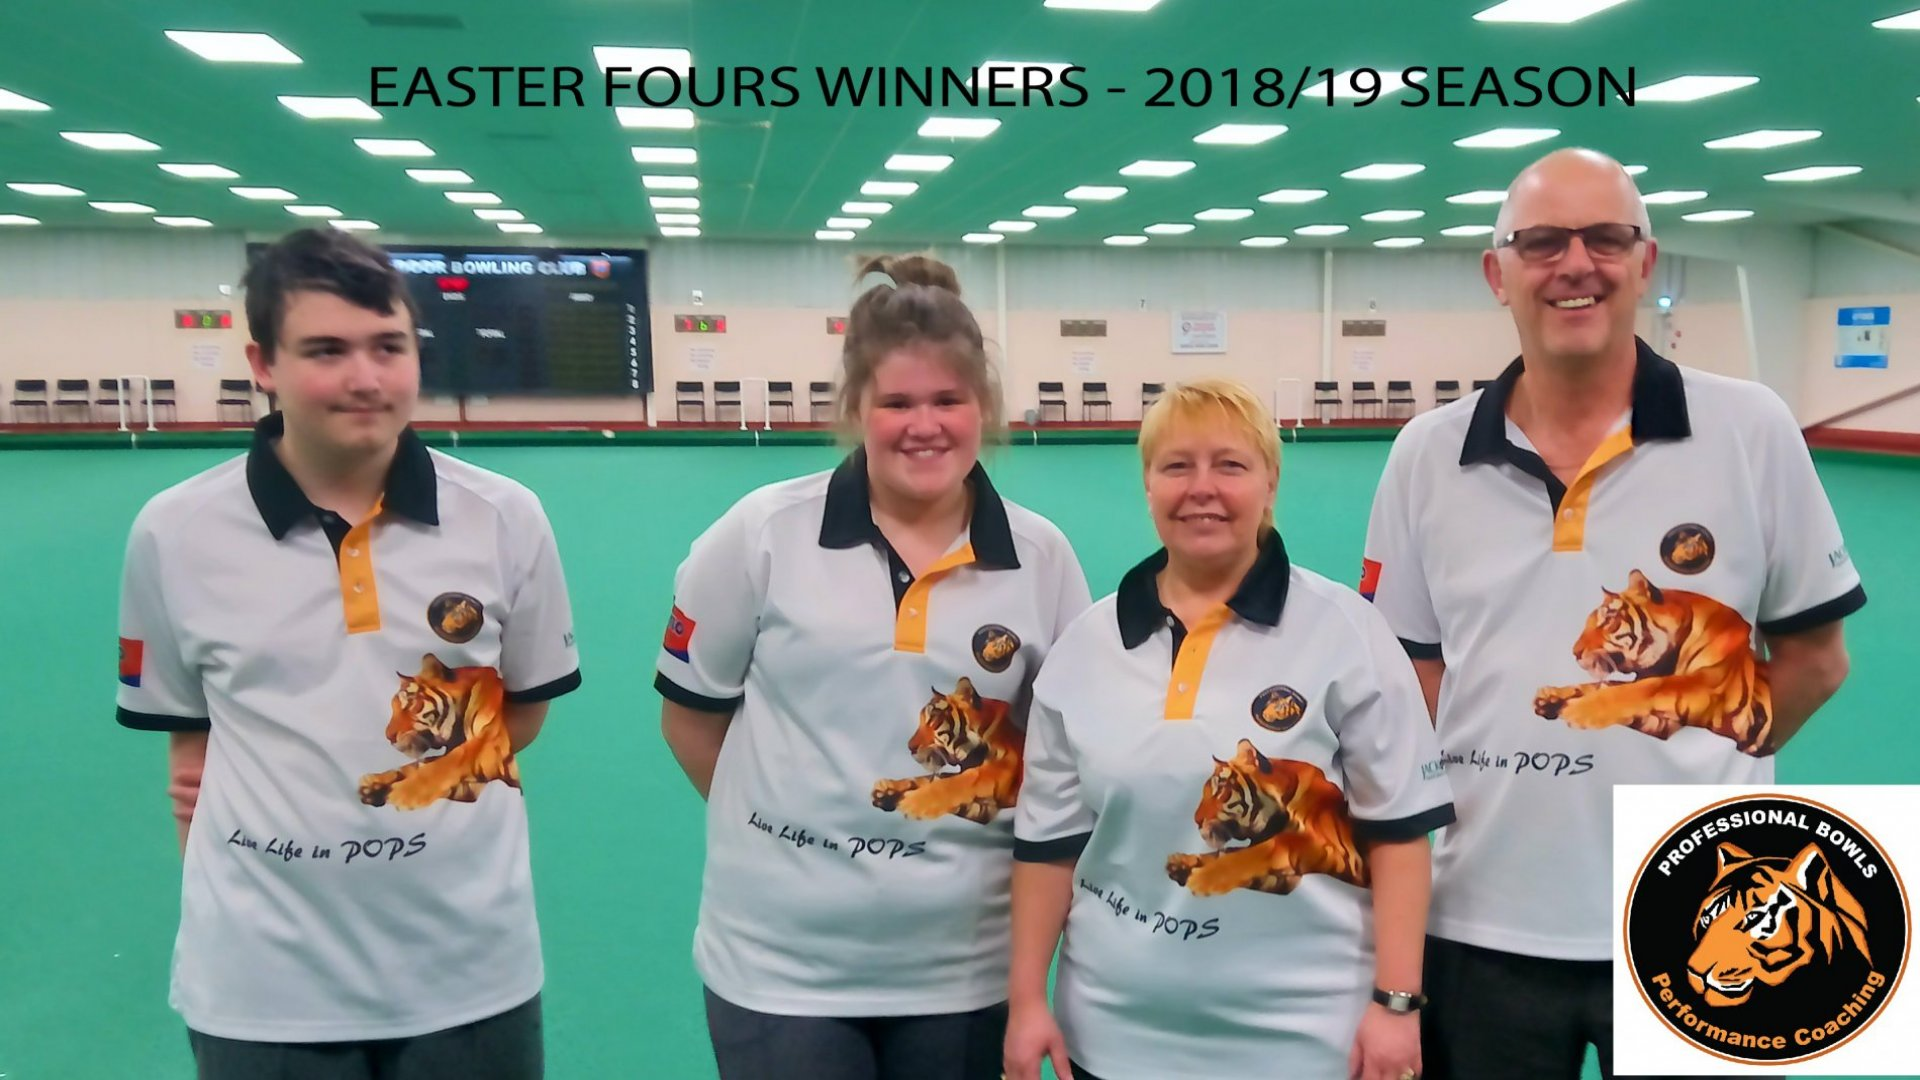 Easter 4's winners for 2018-19 Season - 1_edited-1